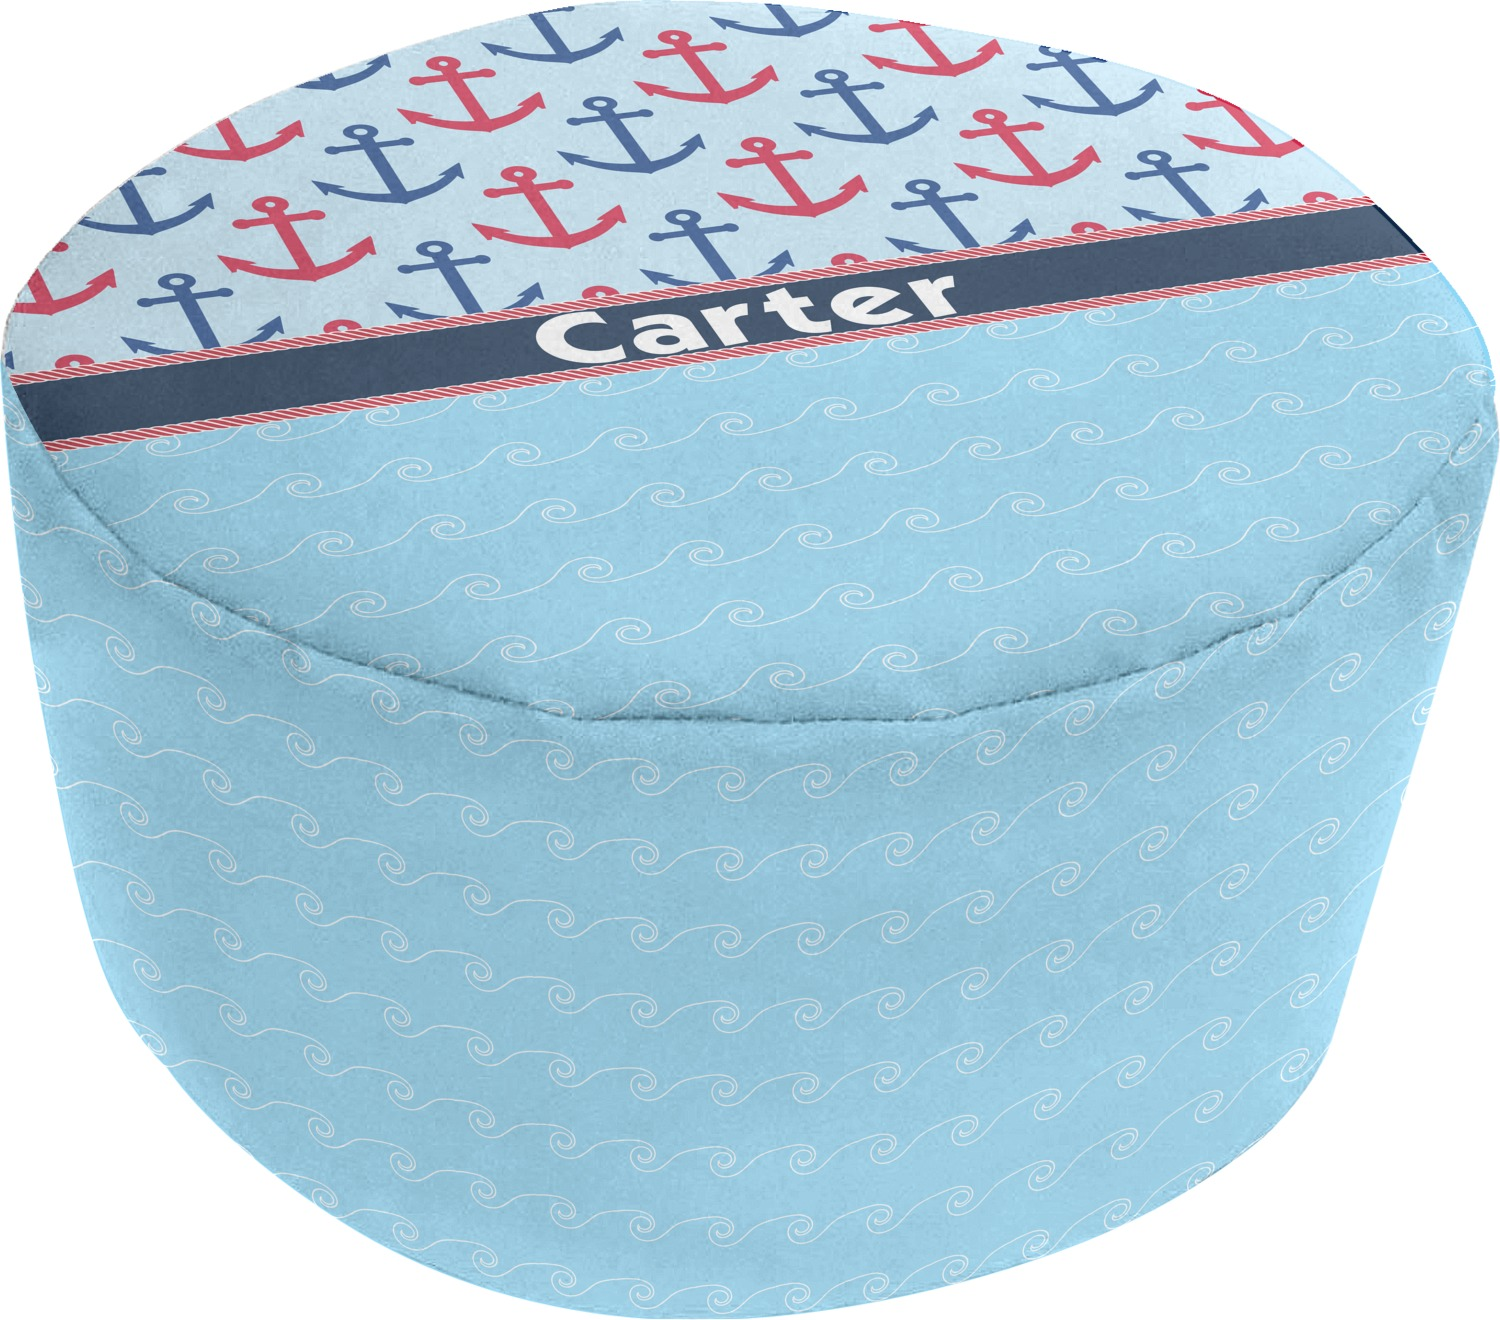 Anchors Amp Waves Round Pouf Ottoman Personalized